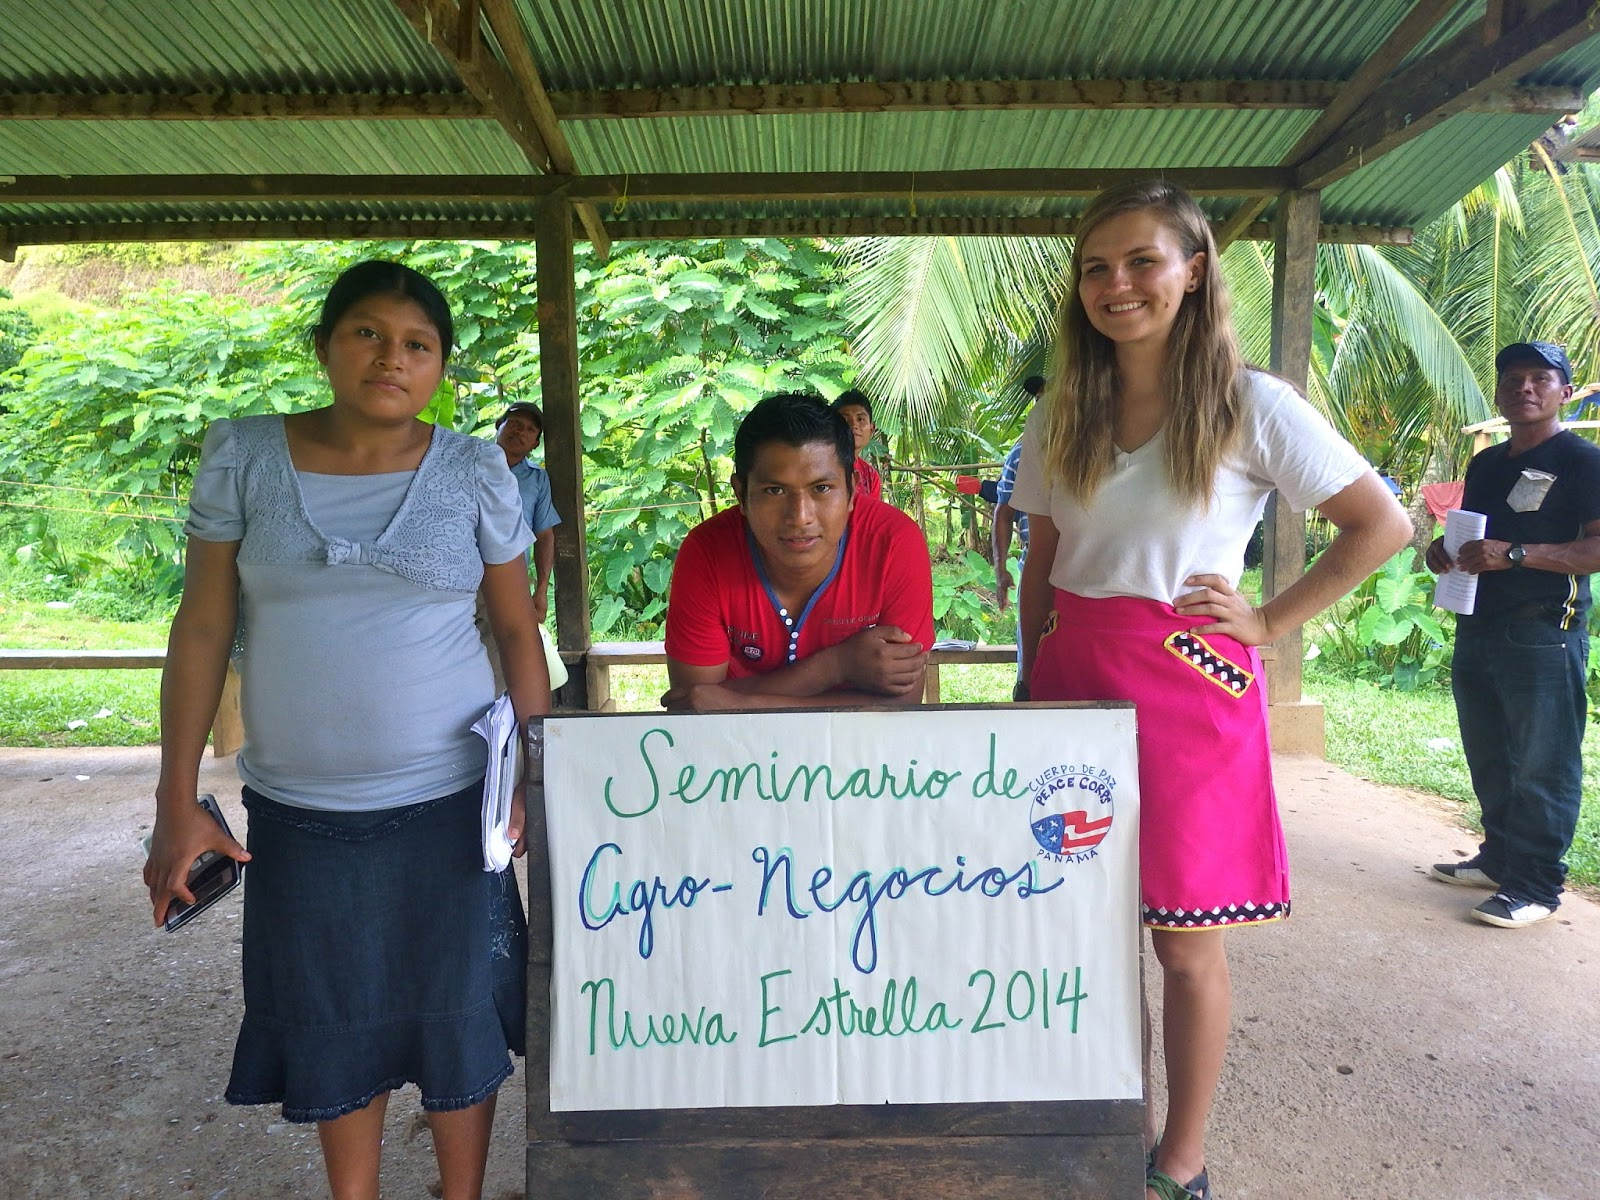 Interacting with locals as a Peace Corps Volunteer